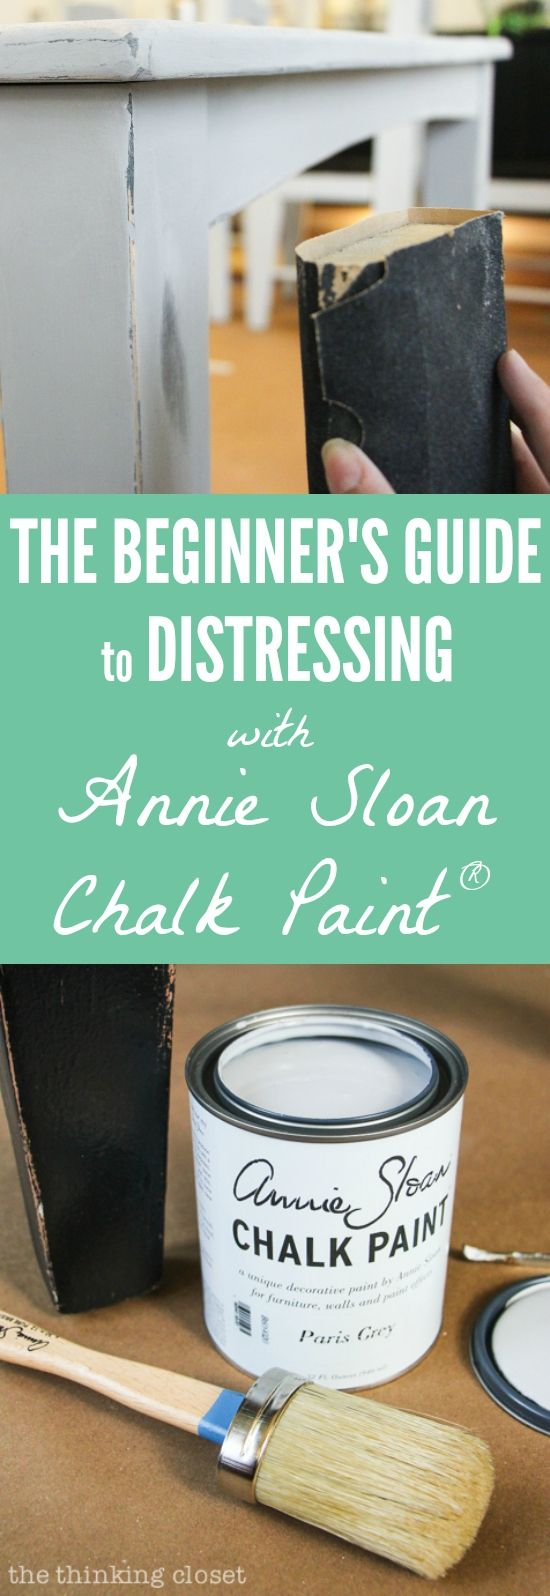 The Beginner's Guide to Distressing with Annie Sloan   It turns out that distressing with Chalk Paint® Decorative Paint and Wax by Annie Sloan doesn't have to be stressful at all! Here's a detailed tutorial for how to age and distress a piece of furniture to give it that time-worn look, rich with character. This guide is your one stop shop for inspiration; so what are you waiting for? This paint is SO easy to work with.